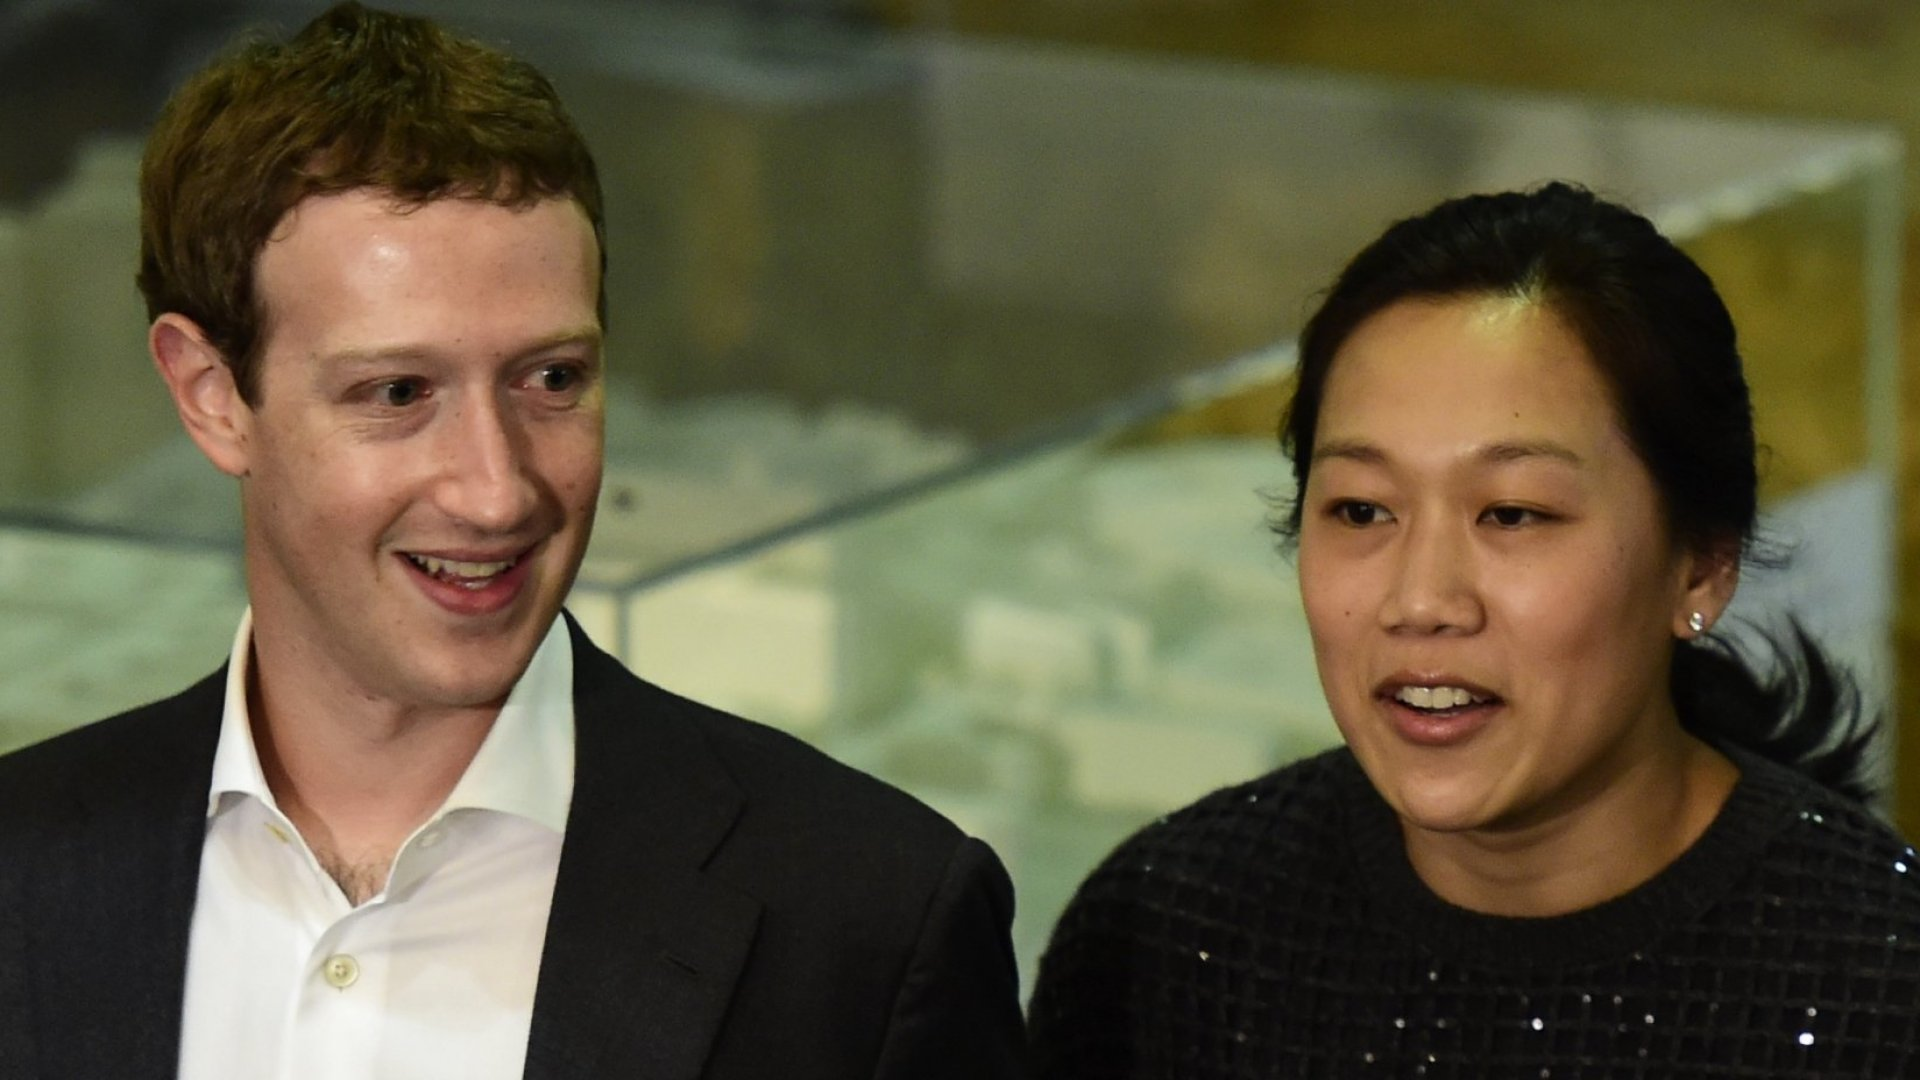 Mark Zuckerberg Adds Former Obama Campaign Manager to His $45 Billion Charity Initiative